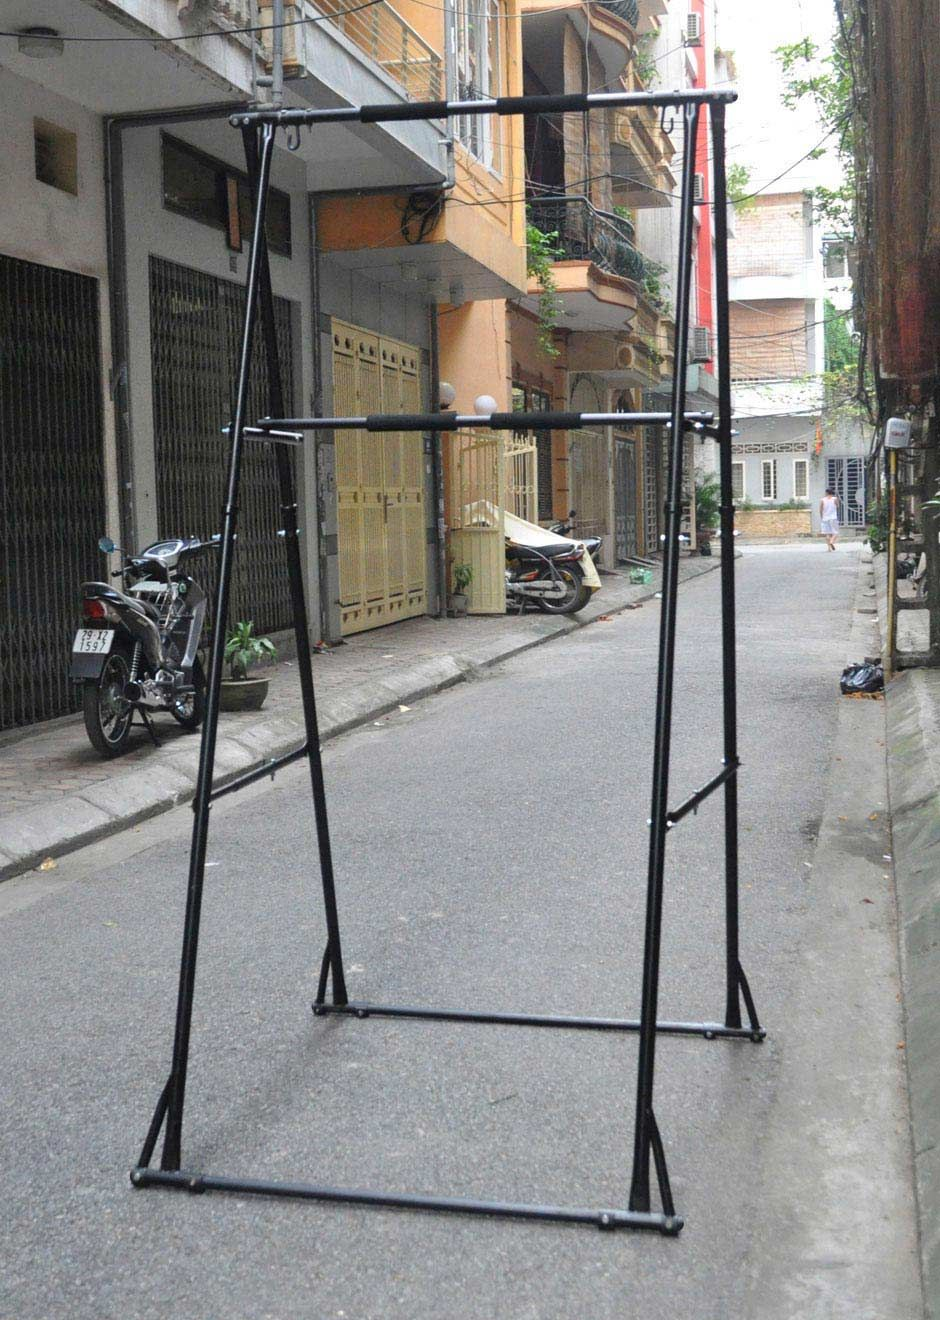 87996d10779 Double tiered Pull up bar (horizontal bar) Model KT1.HT is used for both  children and adult. KHANH TRINH offer free standing pull up bars for  several ...